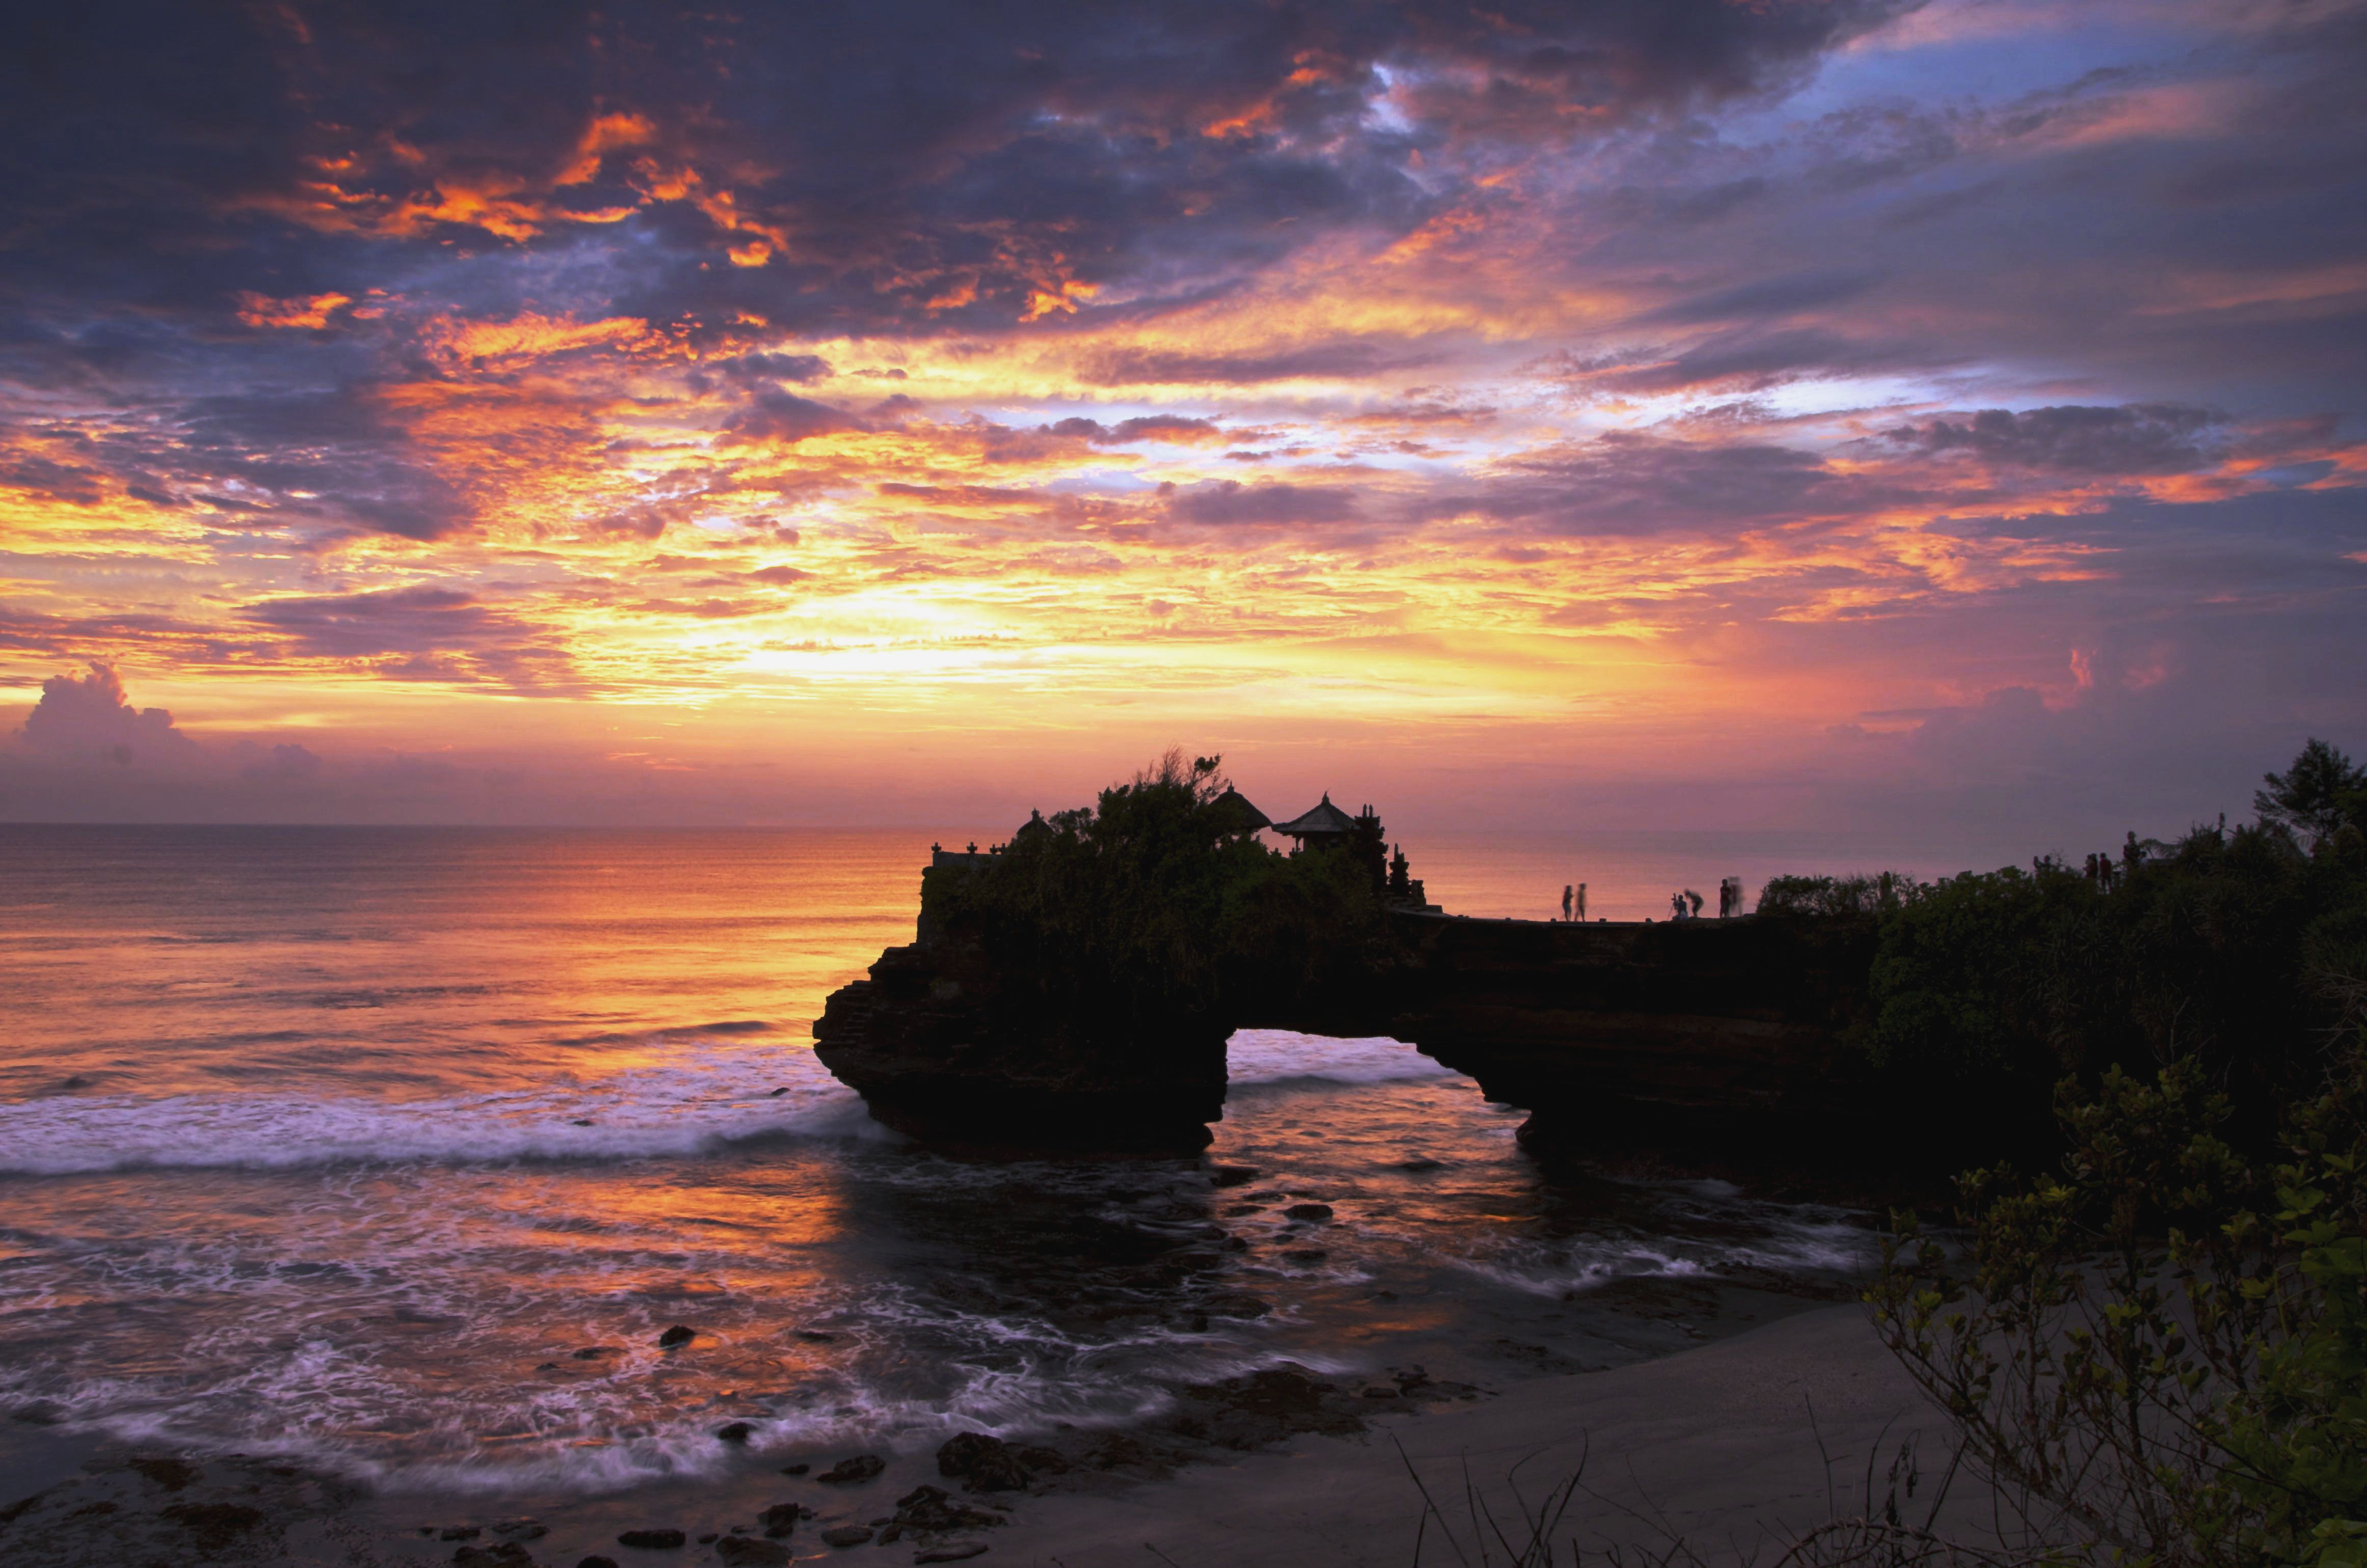 Add to that Tanah Lot